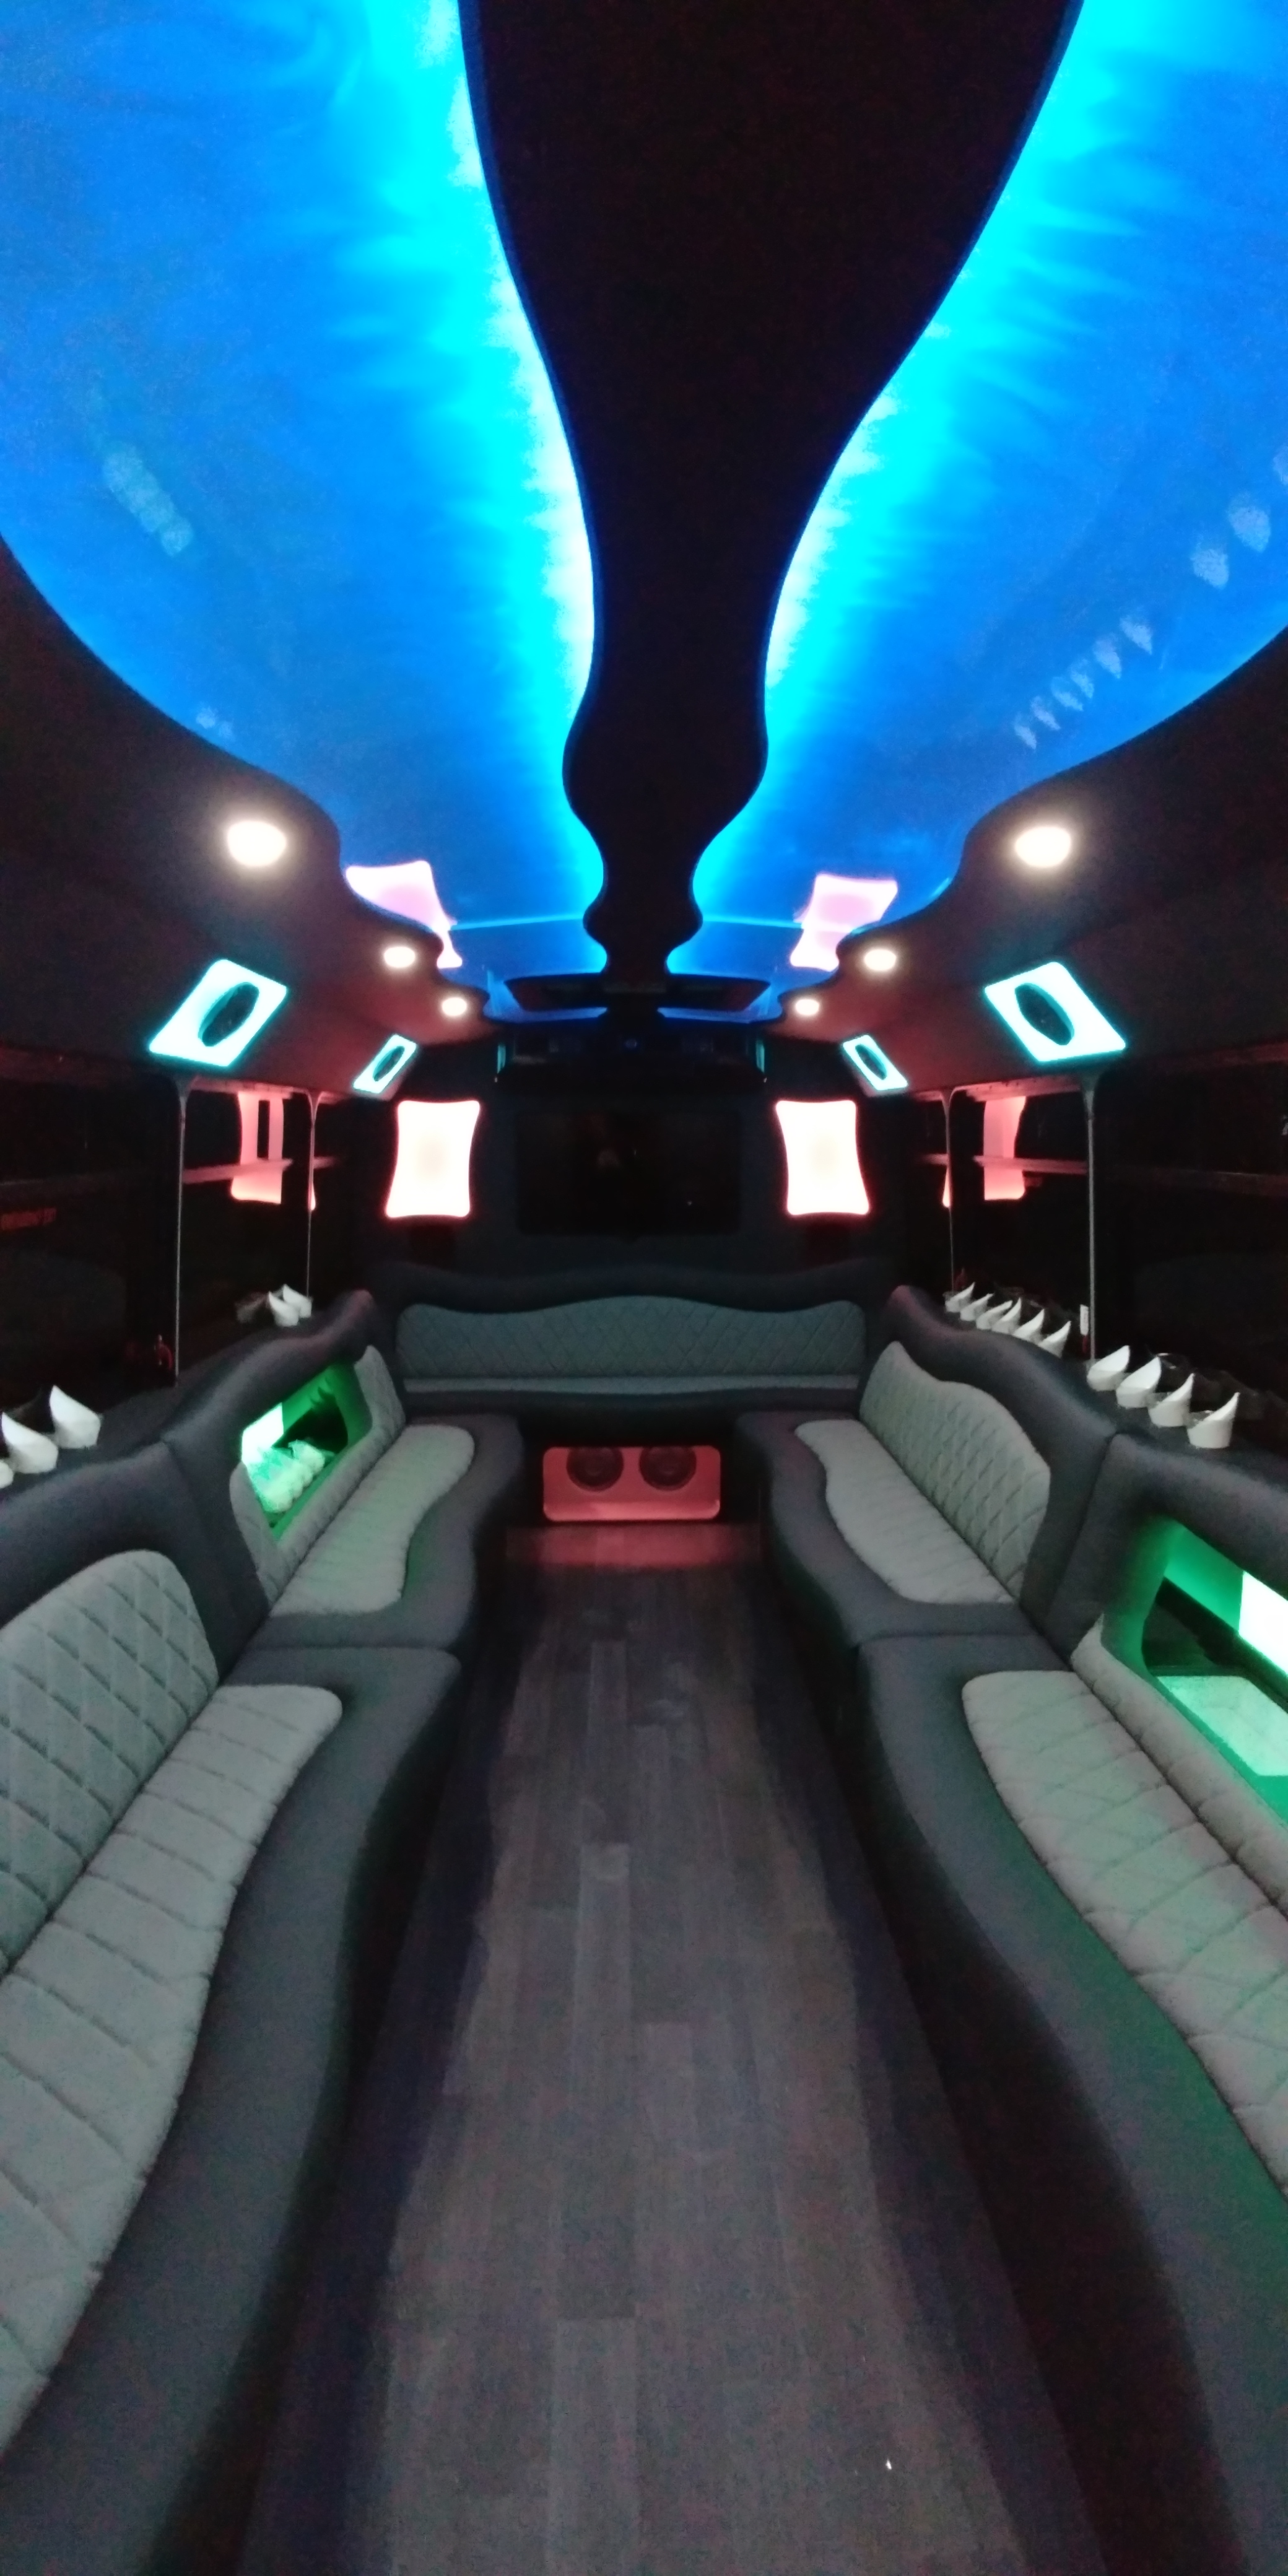 18 Passenger Luxury Limo Bus Nighttime Interior 7